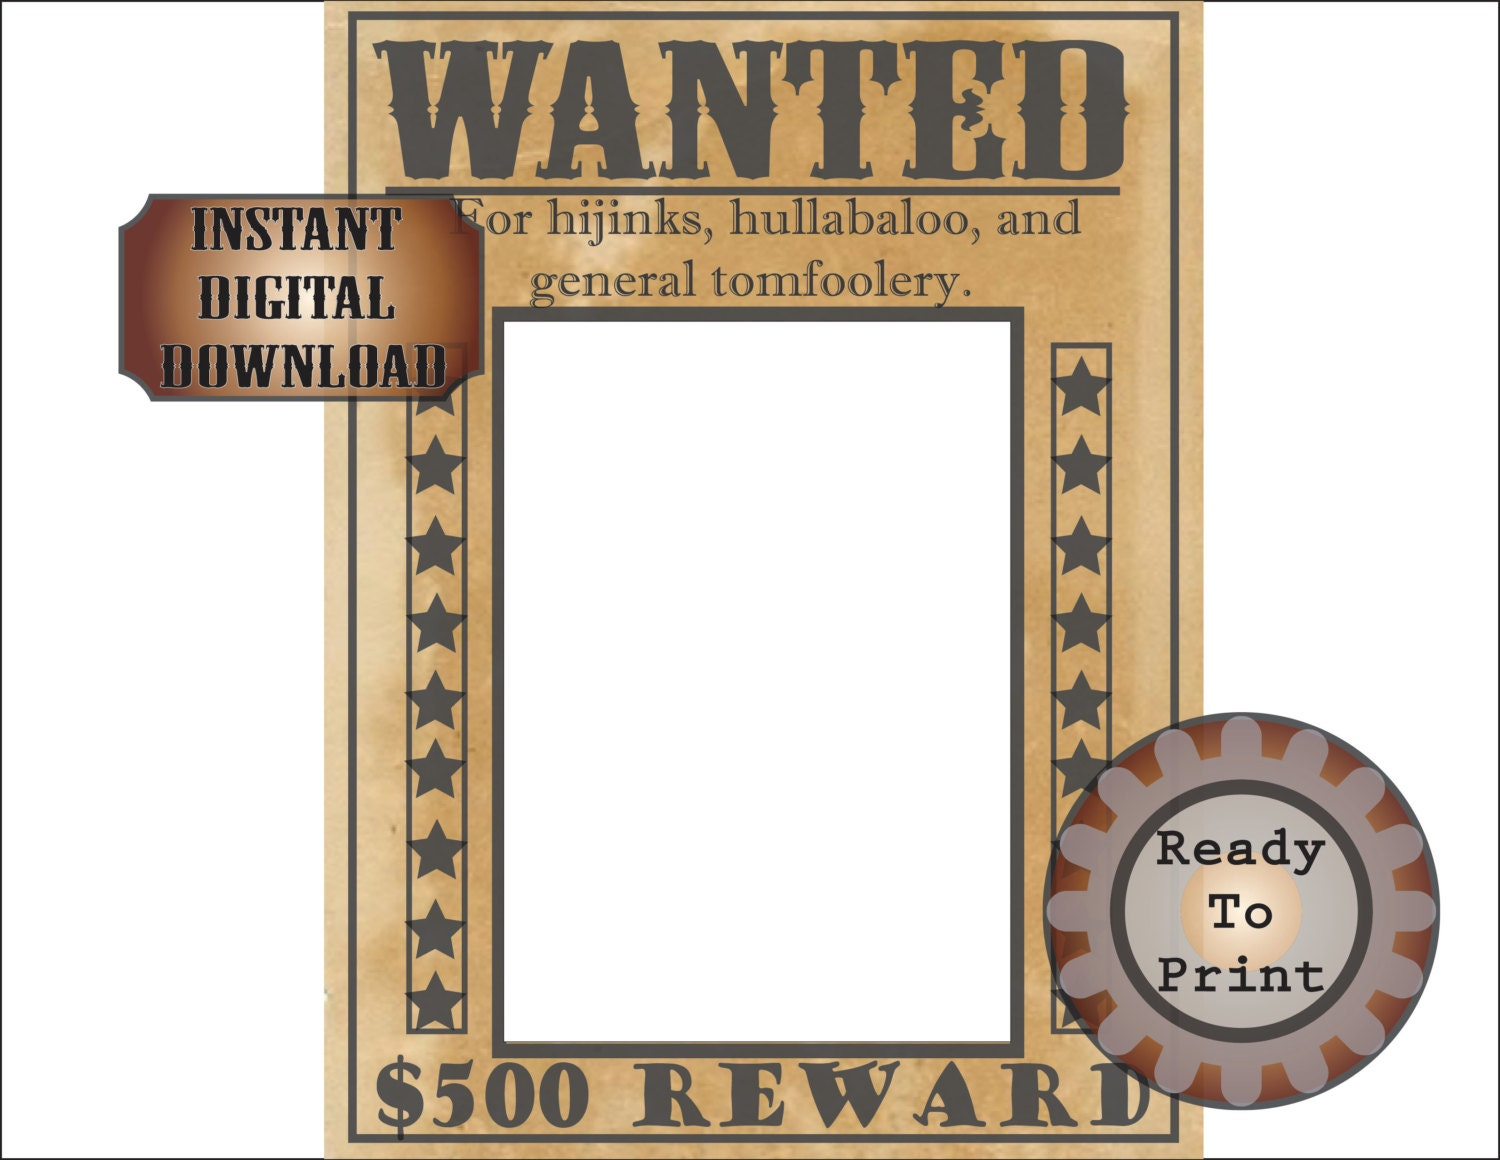 Wild west wanted poster selfie station by theglockycoggler on etsy